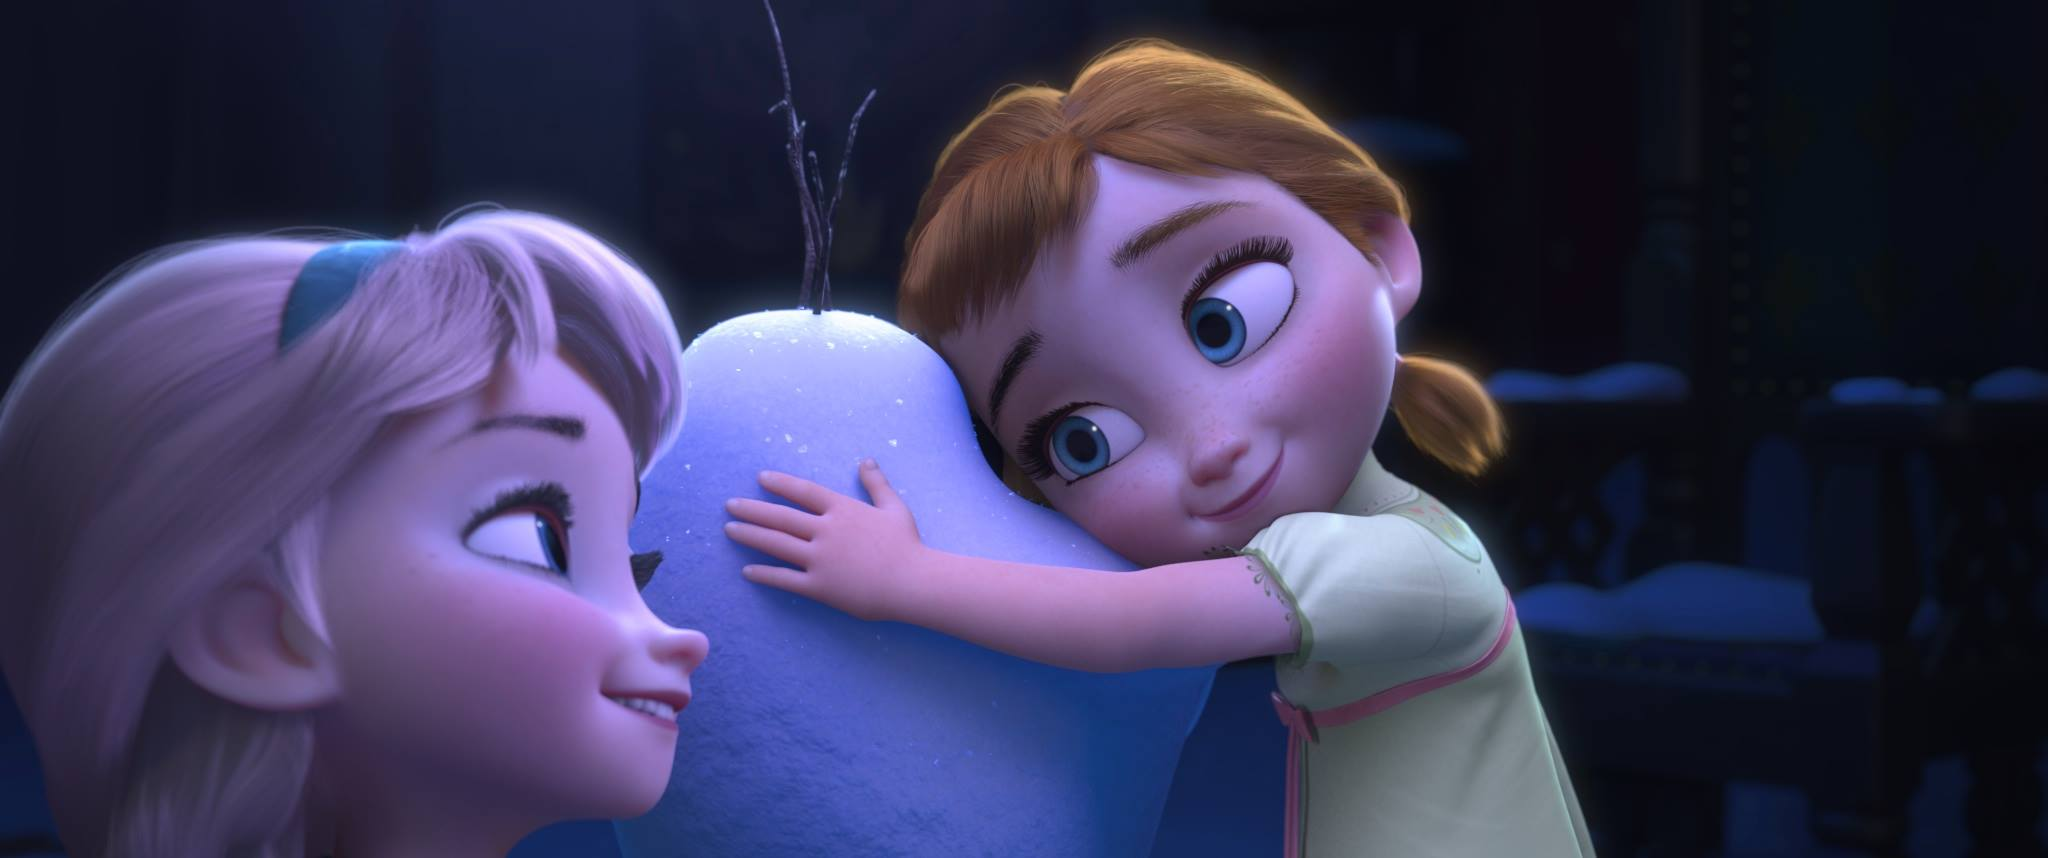 http://img1.wikia.nocookie.net/__cb20140320142309/disney/images/1/11/Little_Anna_and_Elsa_with_Olaf.jpg